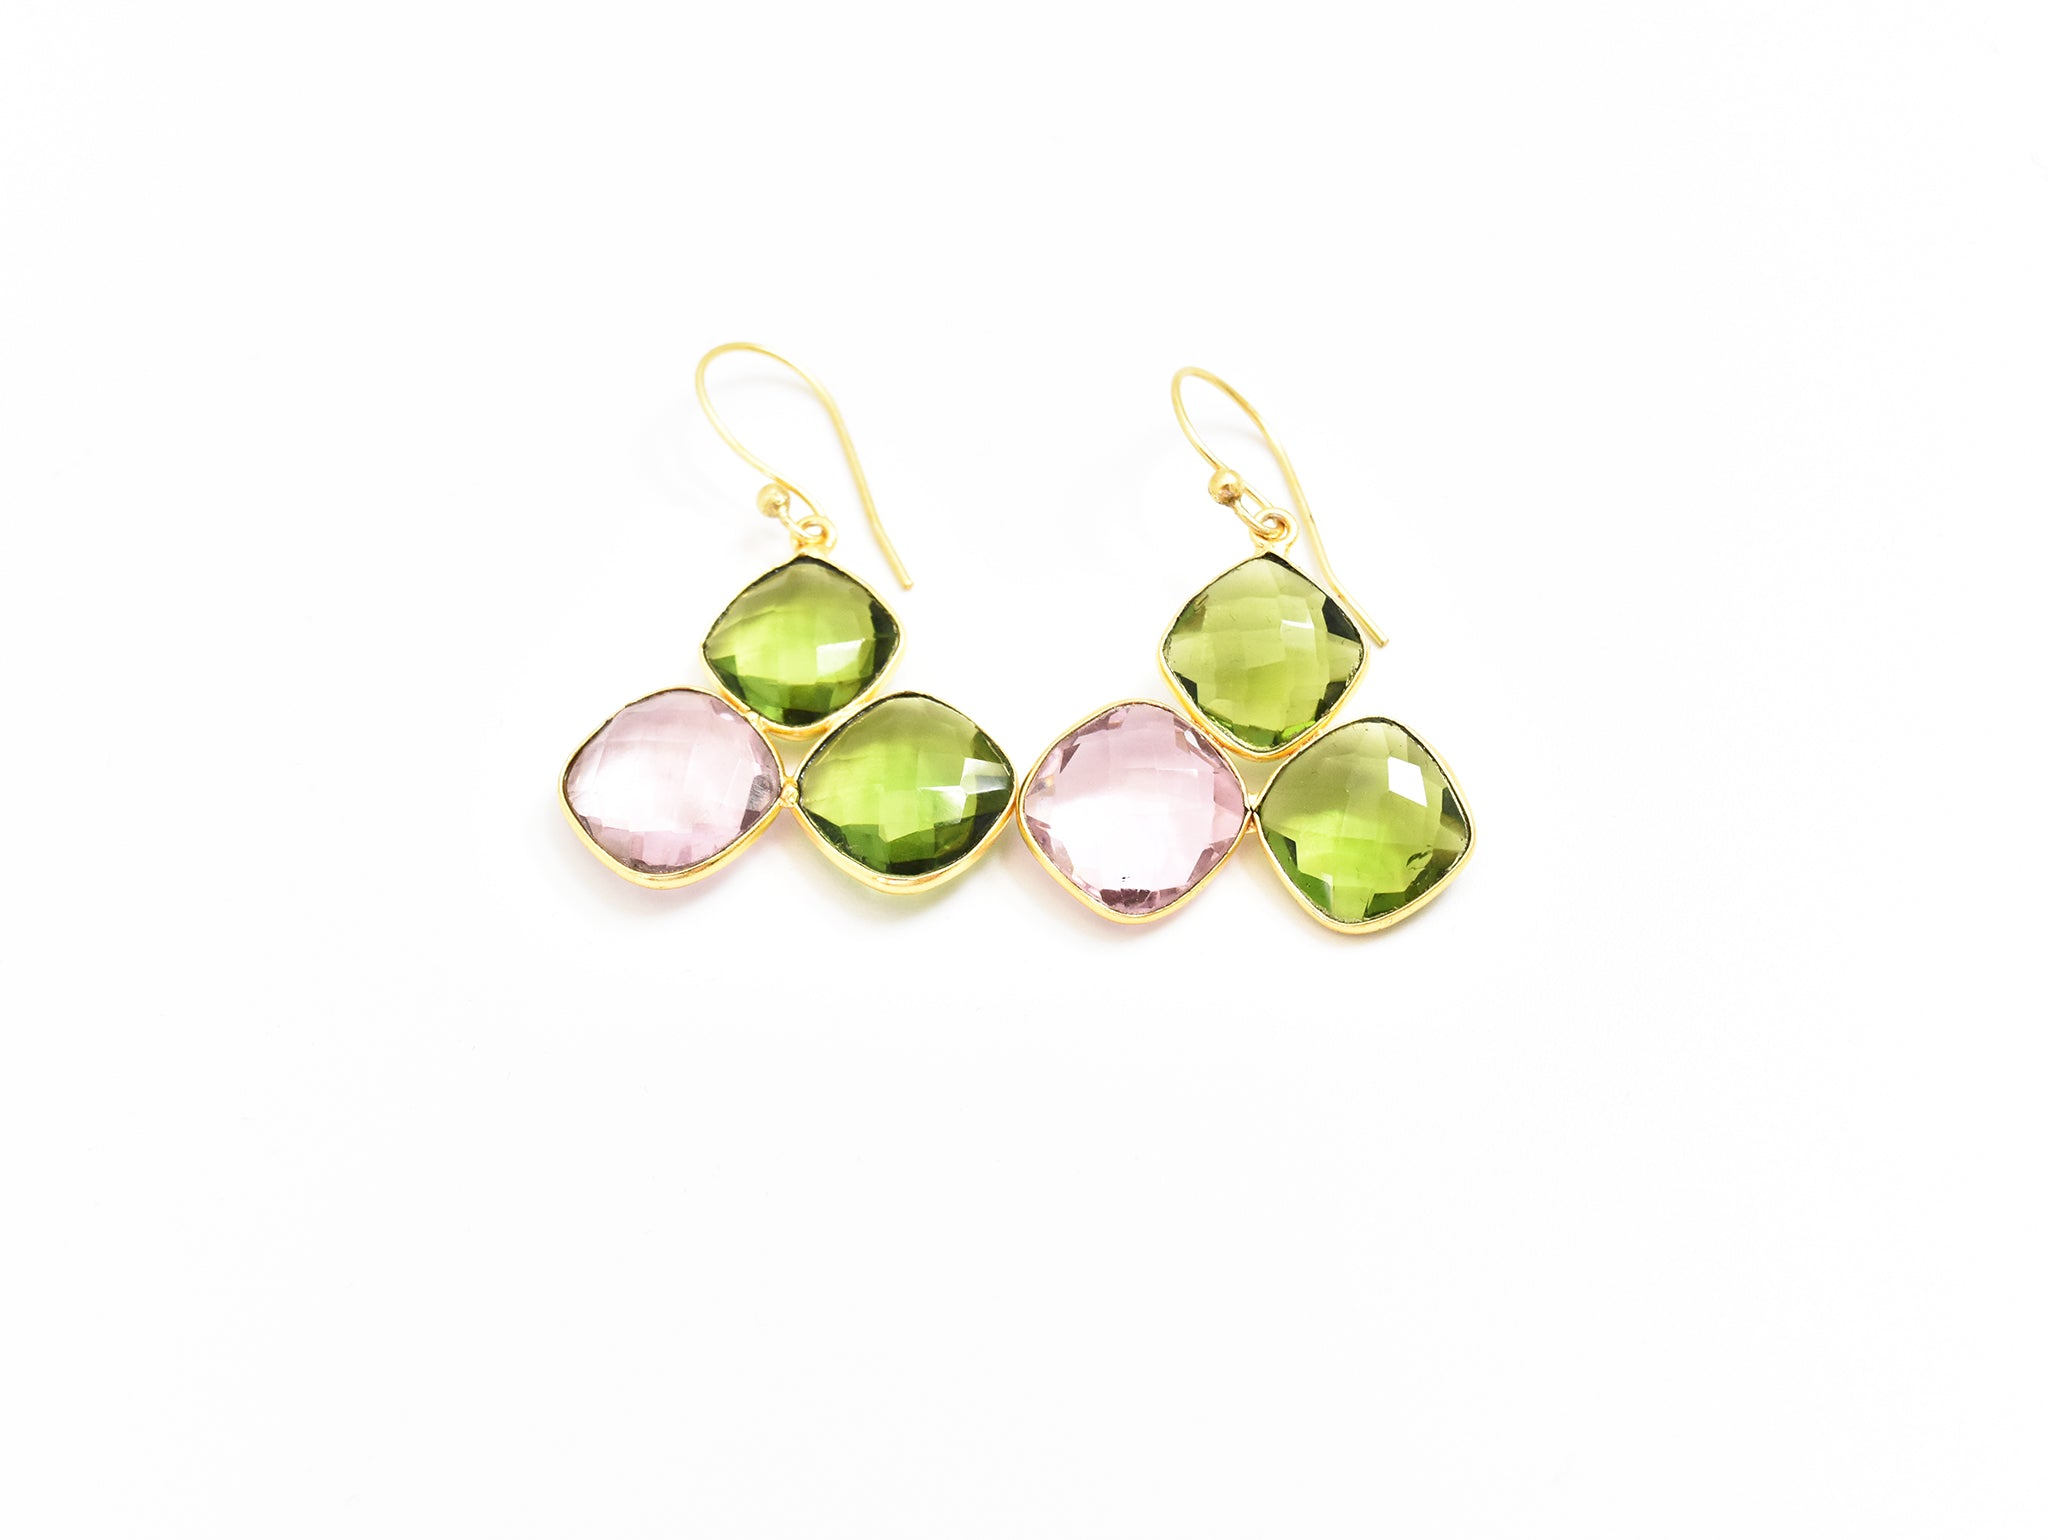 Hydro Peridot and Pink Topaz Earrings